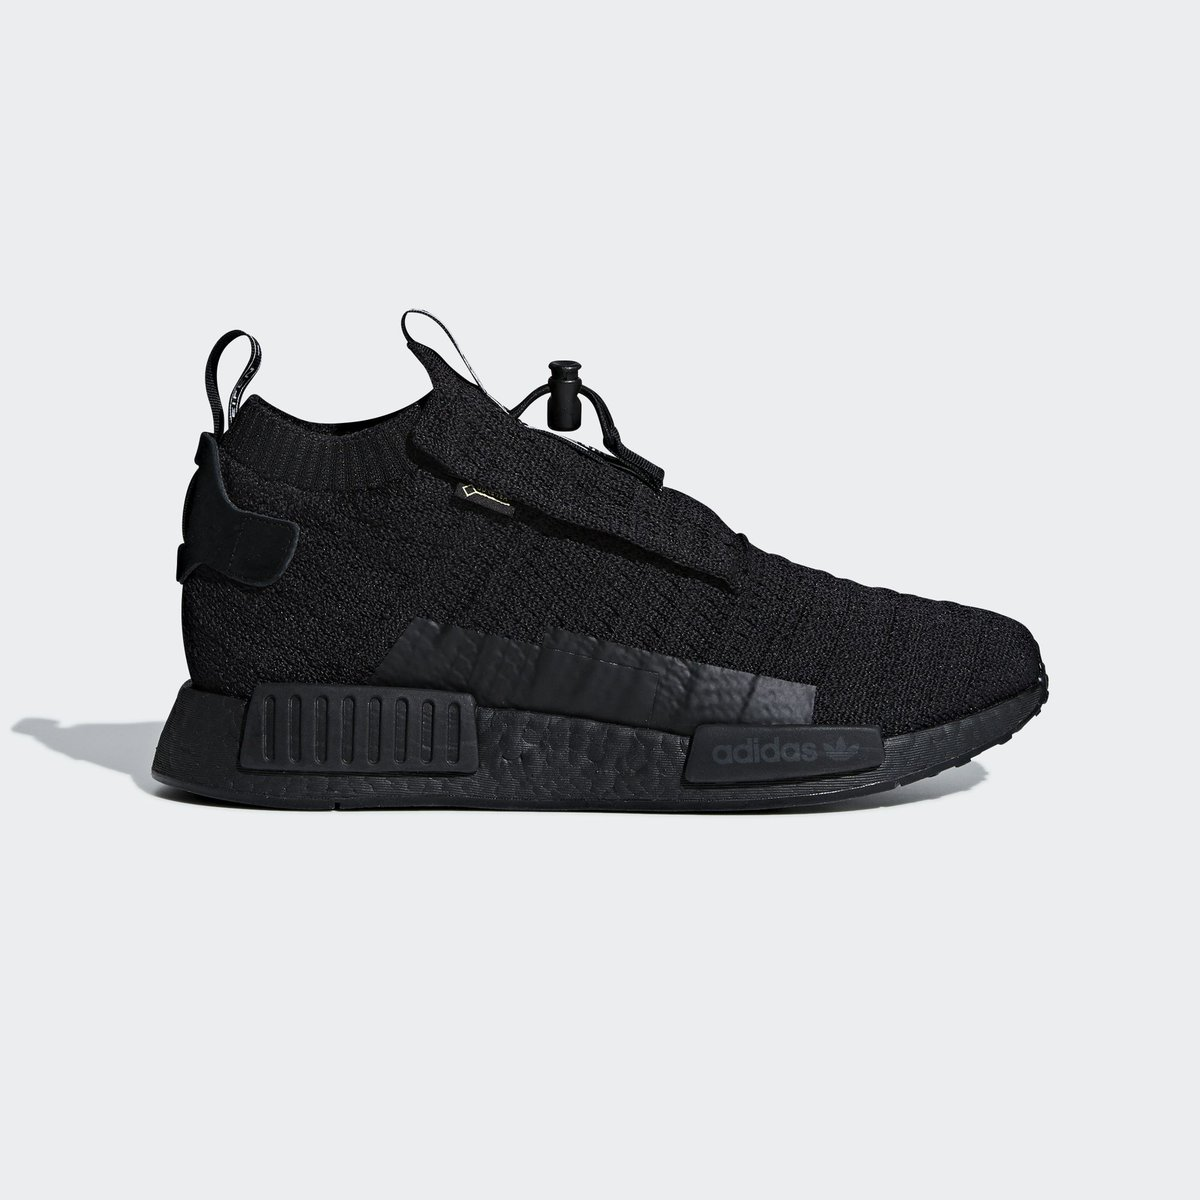 07694e58620ac Available early on  SSENSE. adidas NMD TS1 Primeknit Goretex. adidas NMD R1  Ripstop. —  https   bit.ly 2Pp3k5L pic.twitter.com xbEvDKF6kN